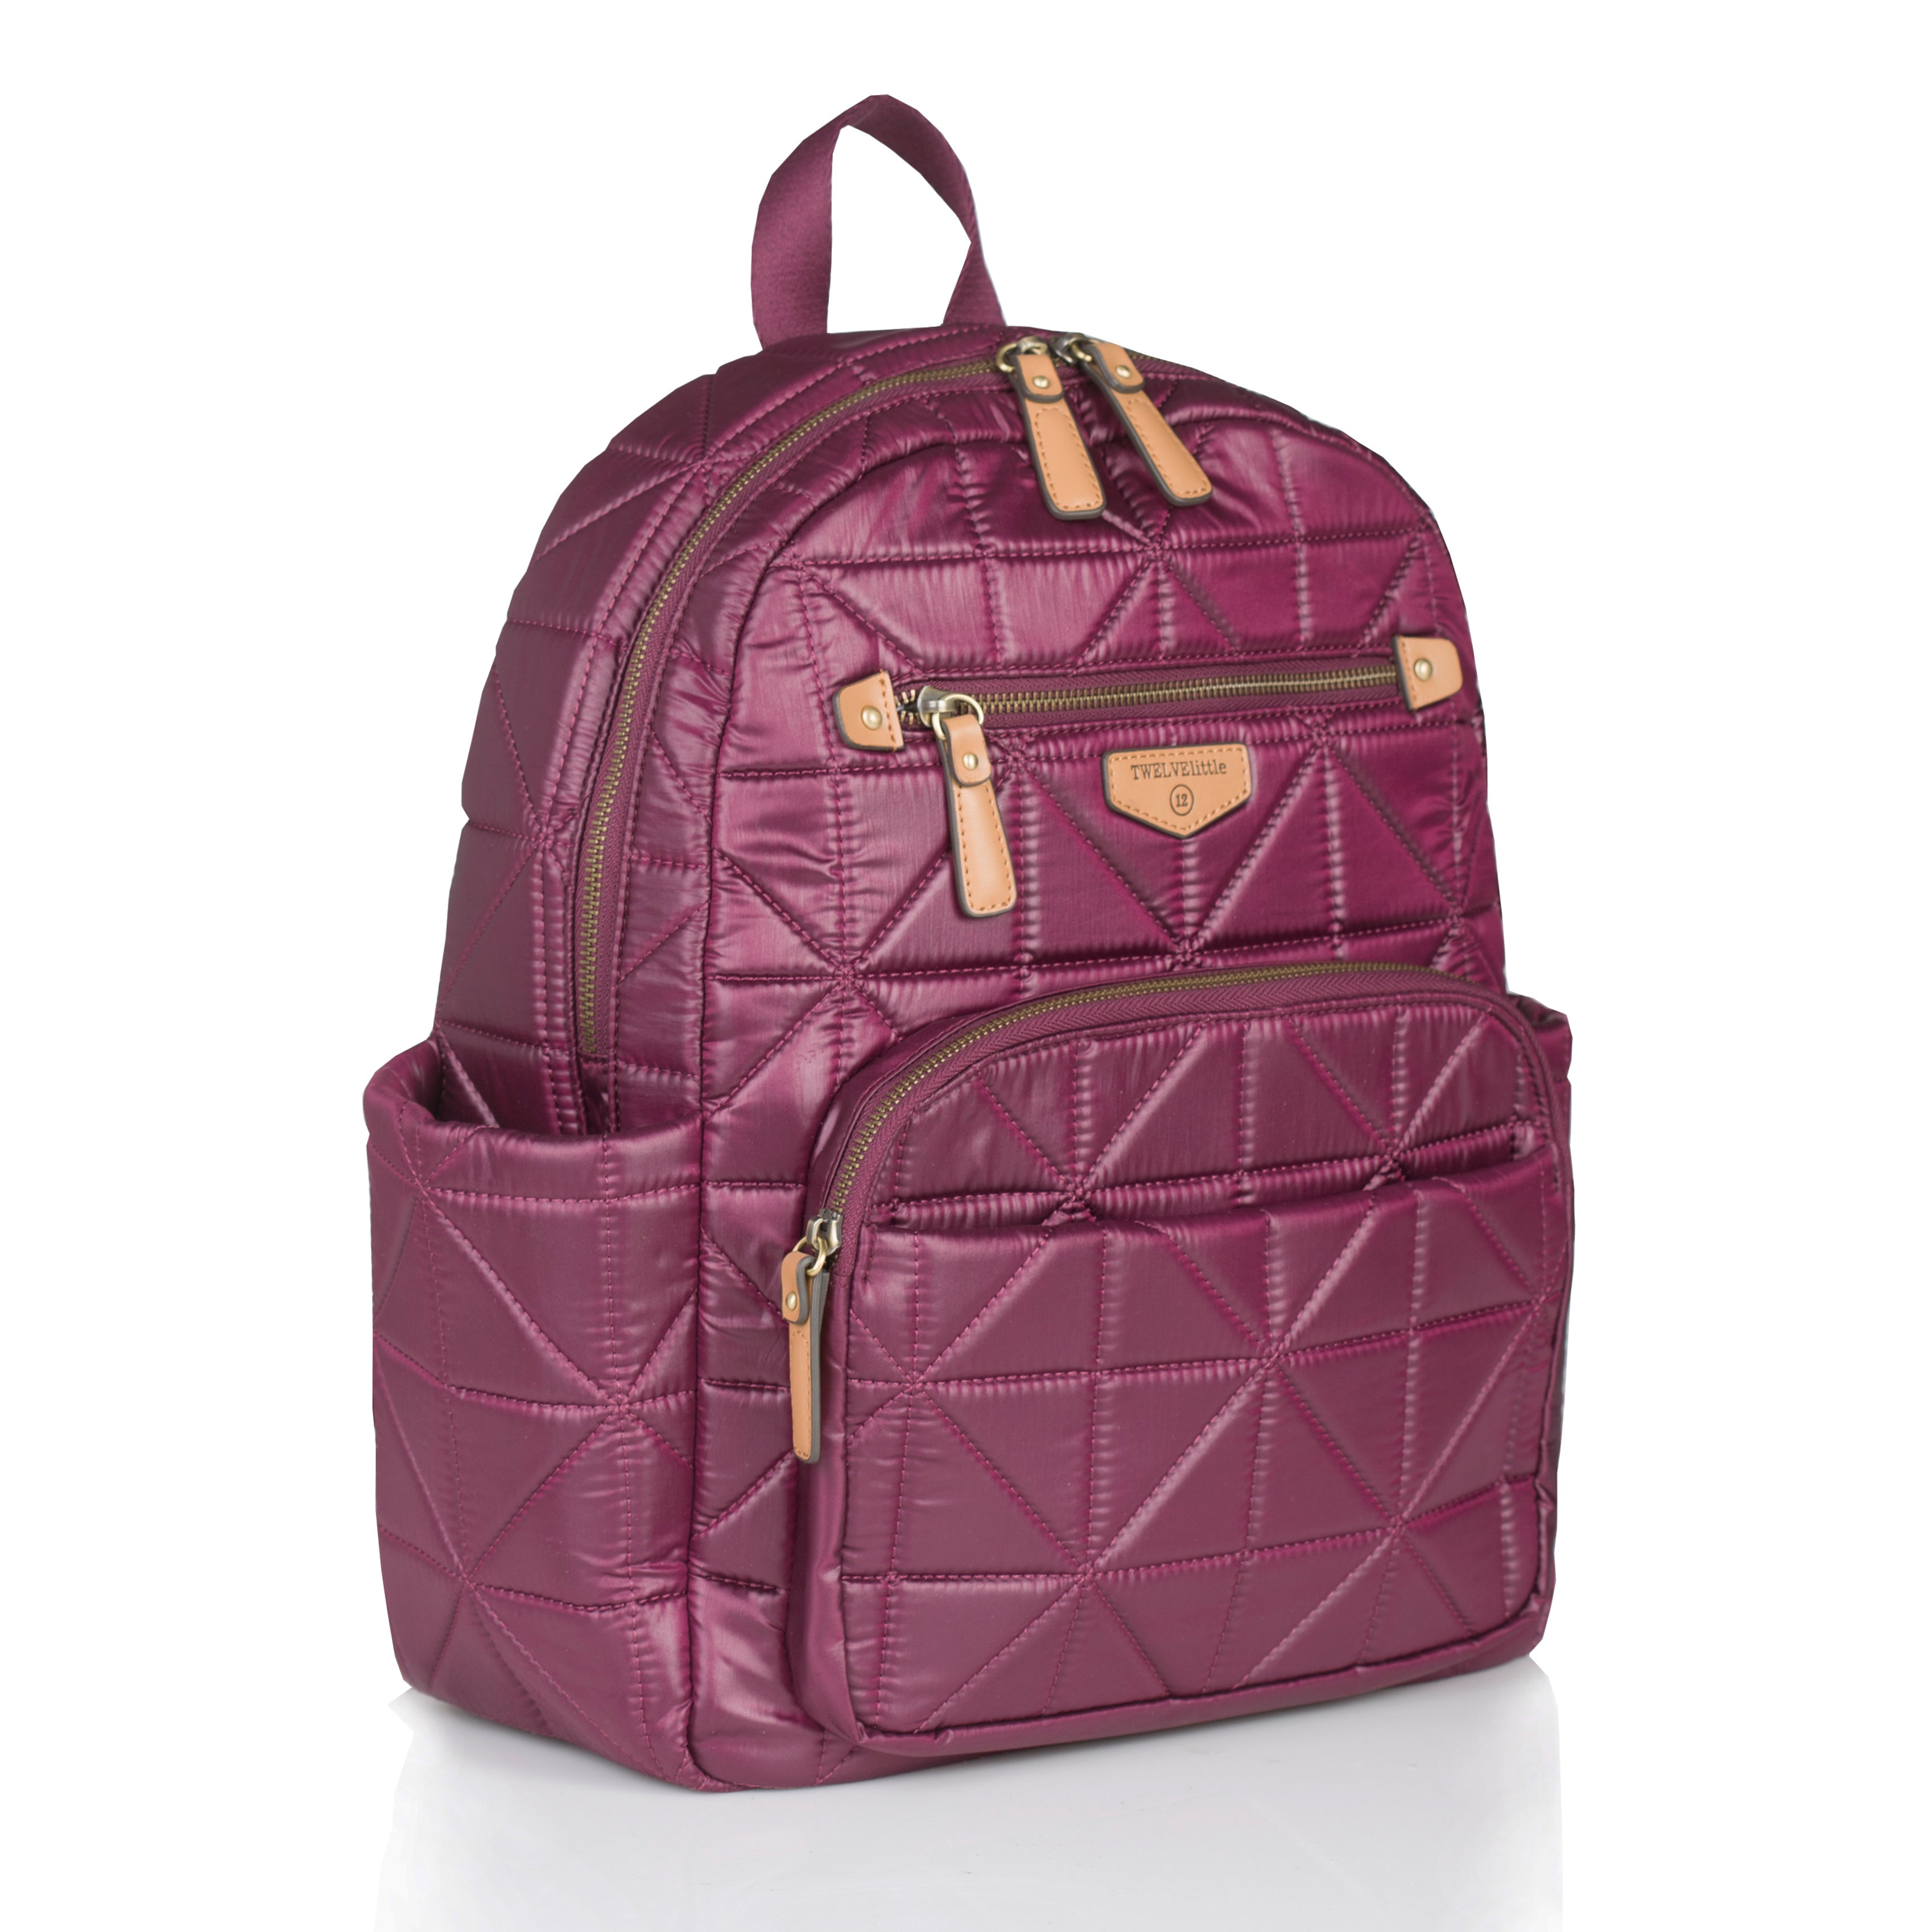 Side view of wine companion backpack